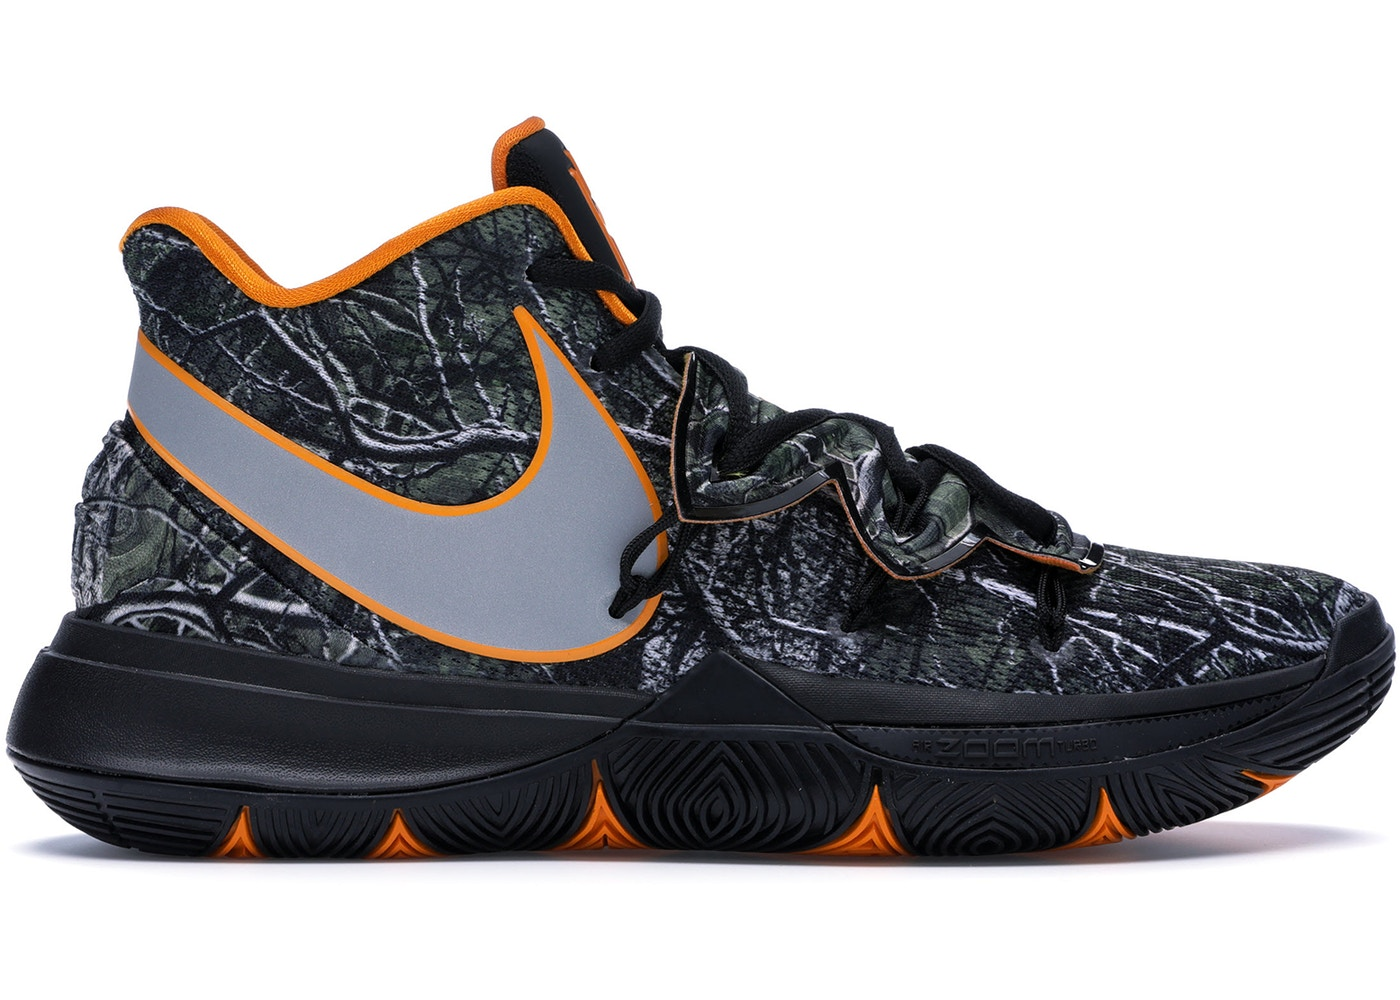 2d21113f5a6 Buy Nike Basketball Kyrie Shoes   Deadstock Sneakers